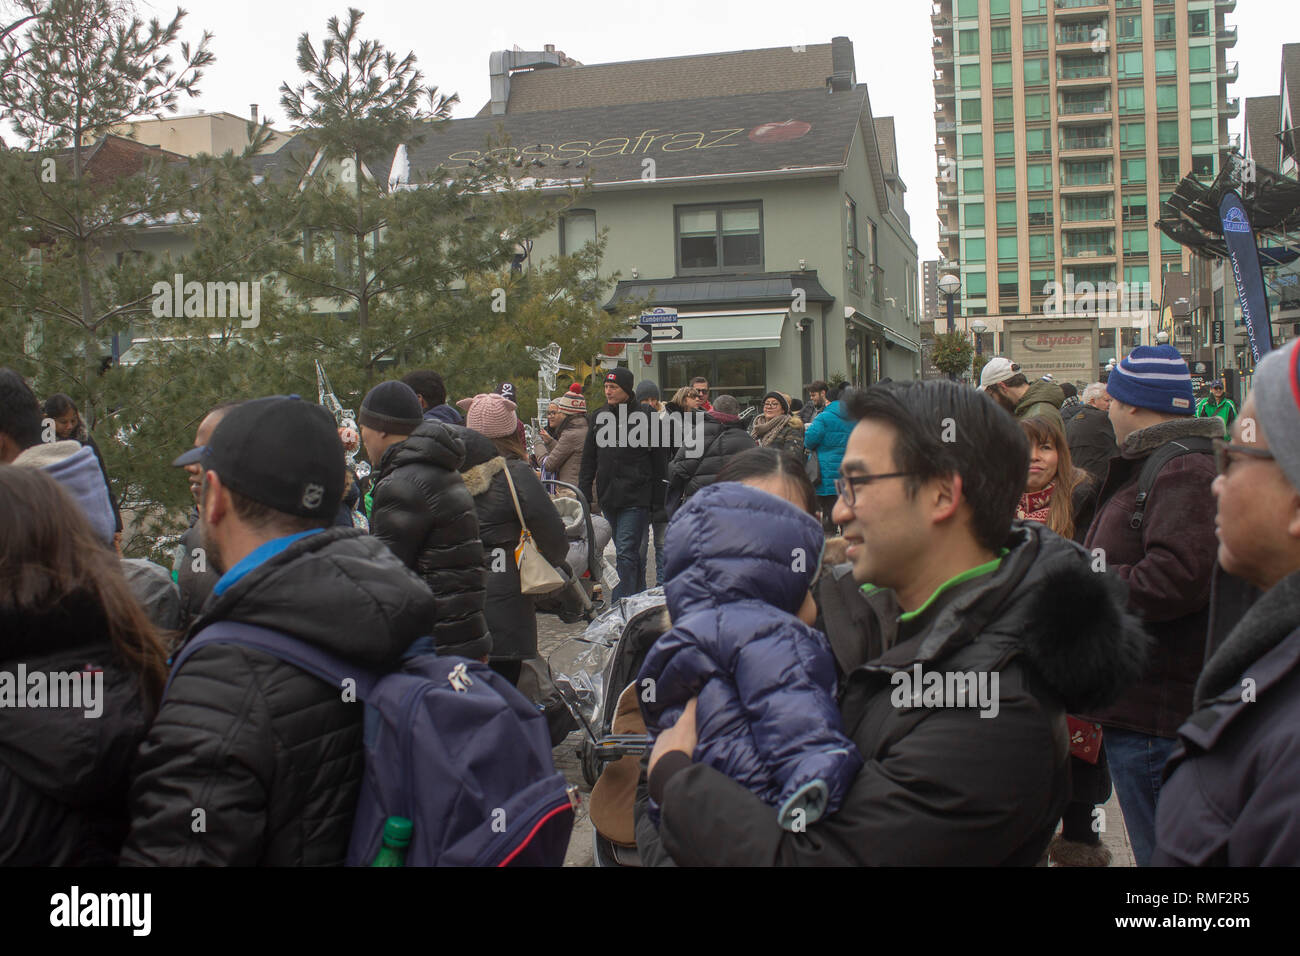 Crowd of onlookers at family friendly festival - Stock Image